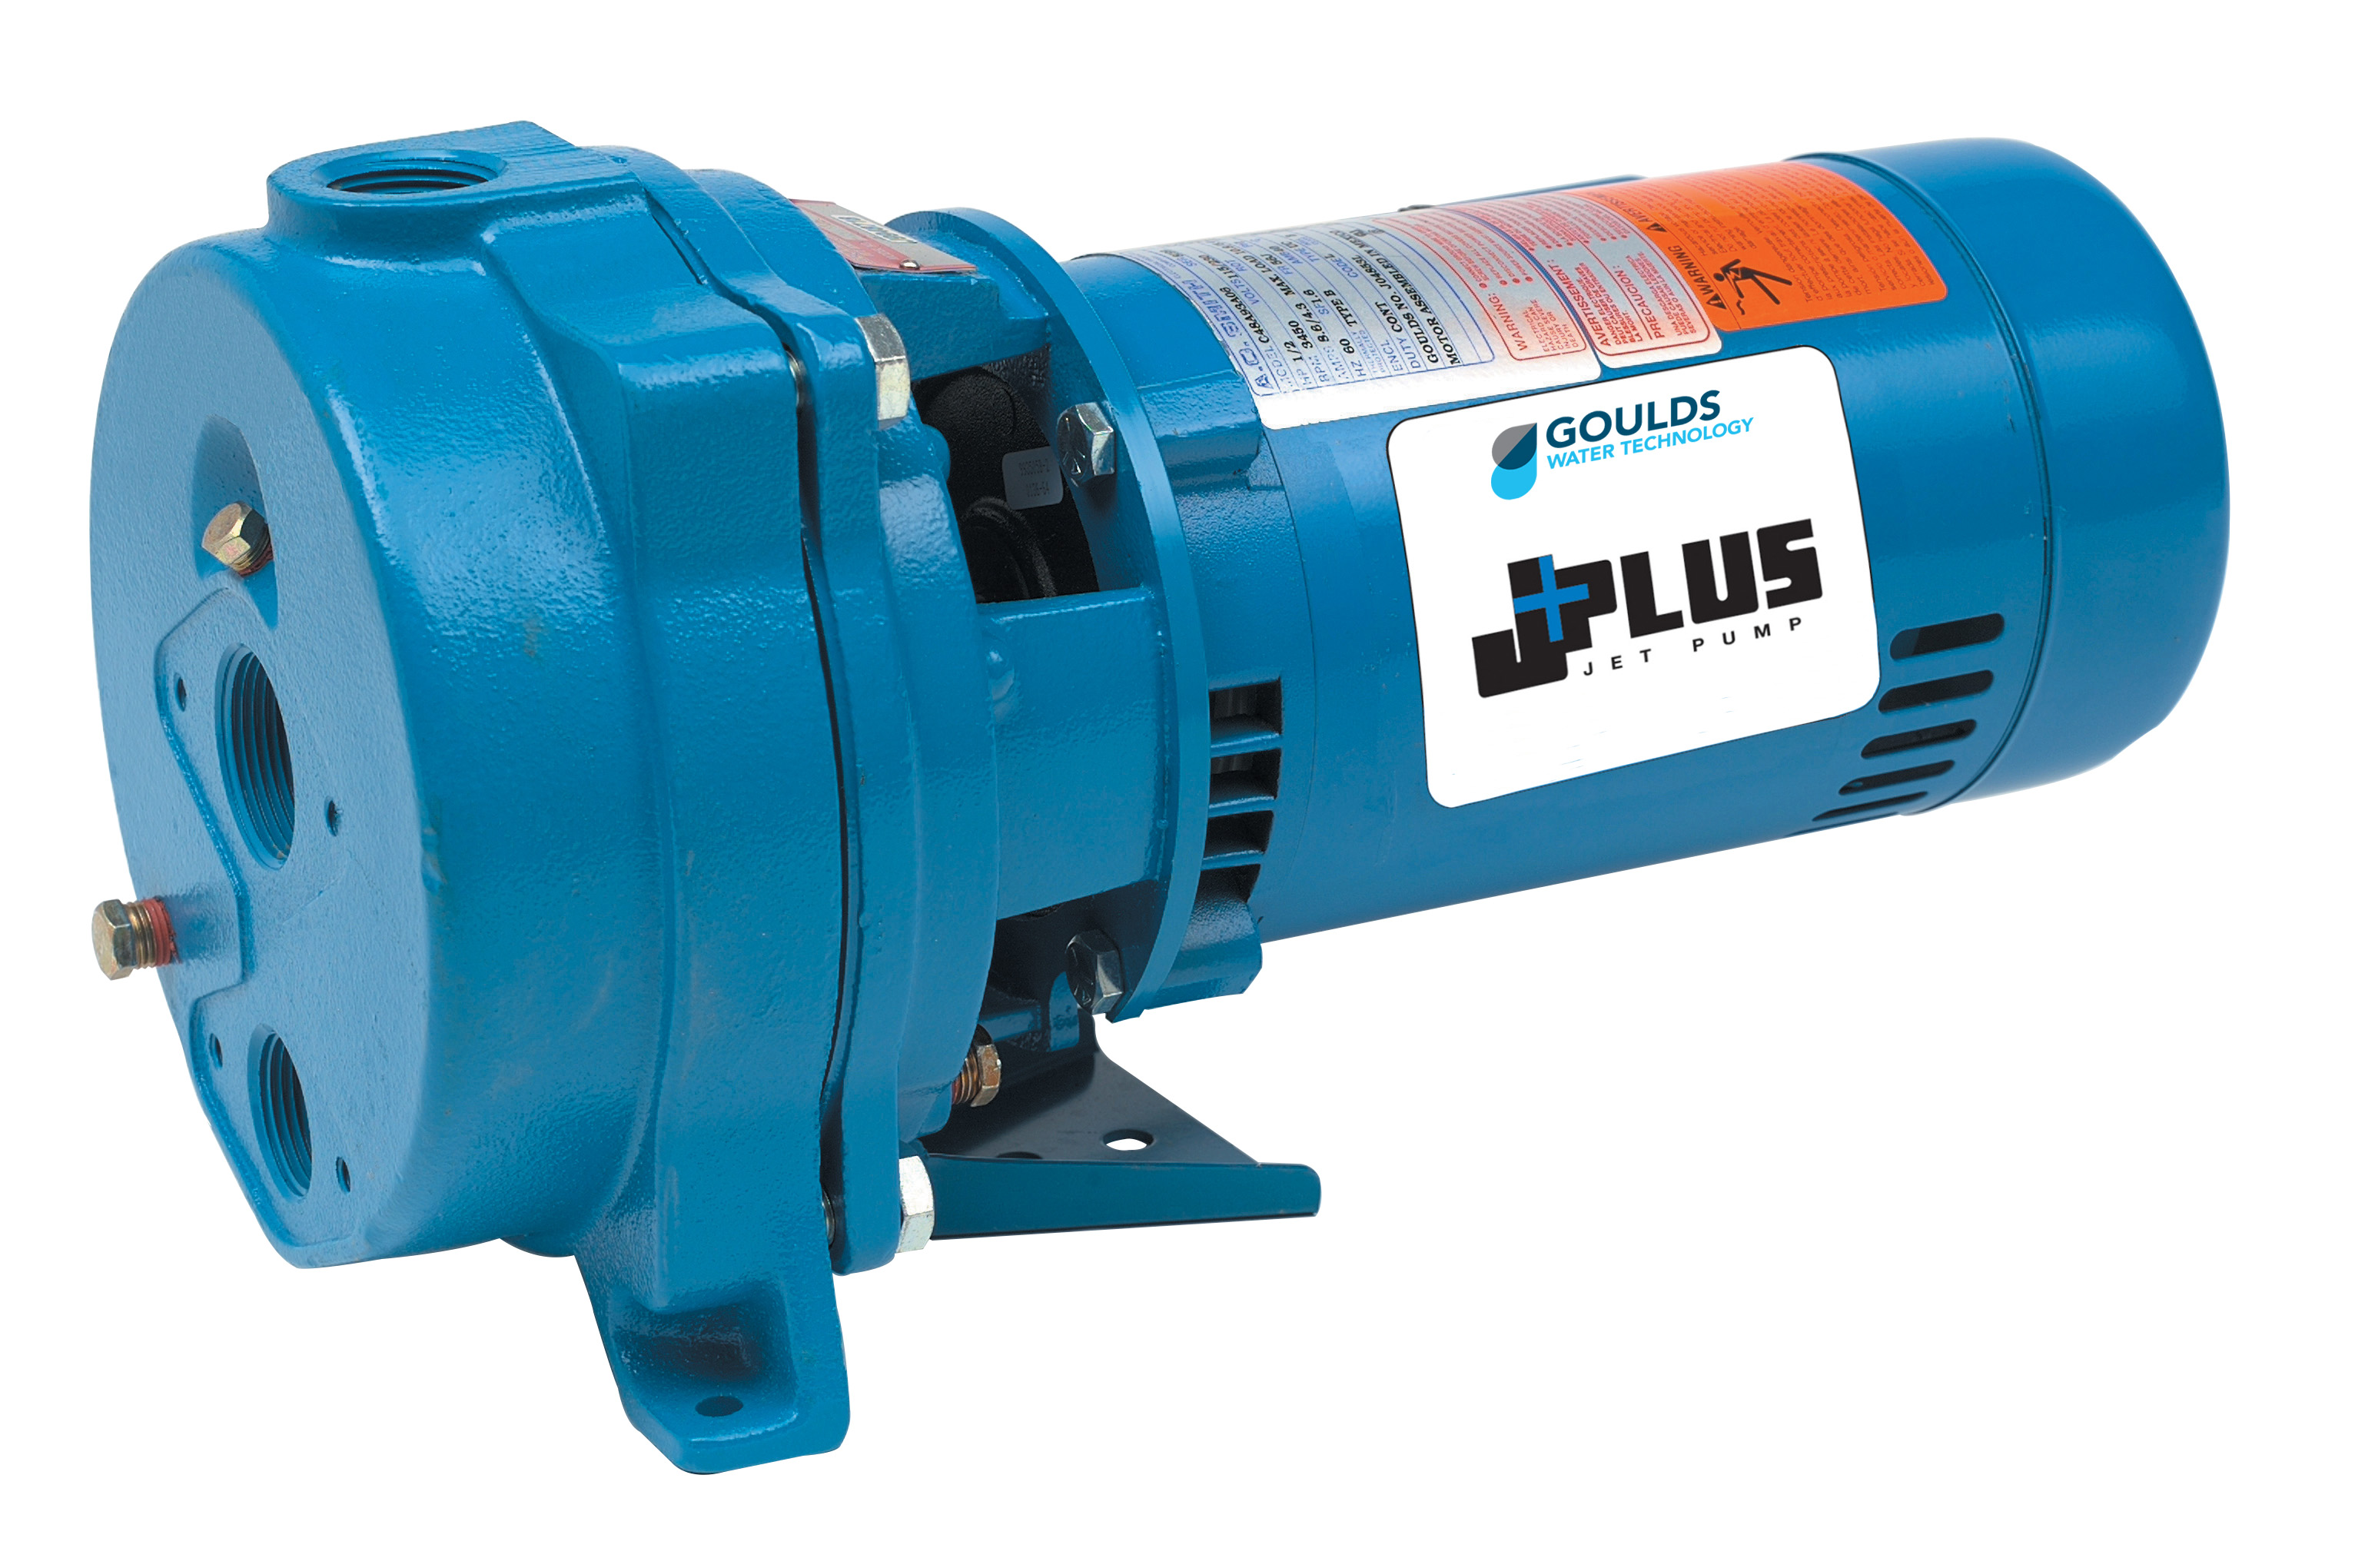 J5 1/2HP J  Convertible Jet Pump